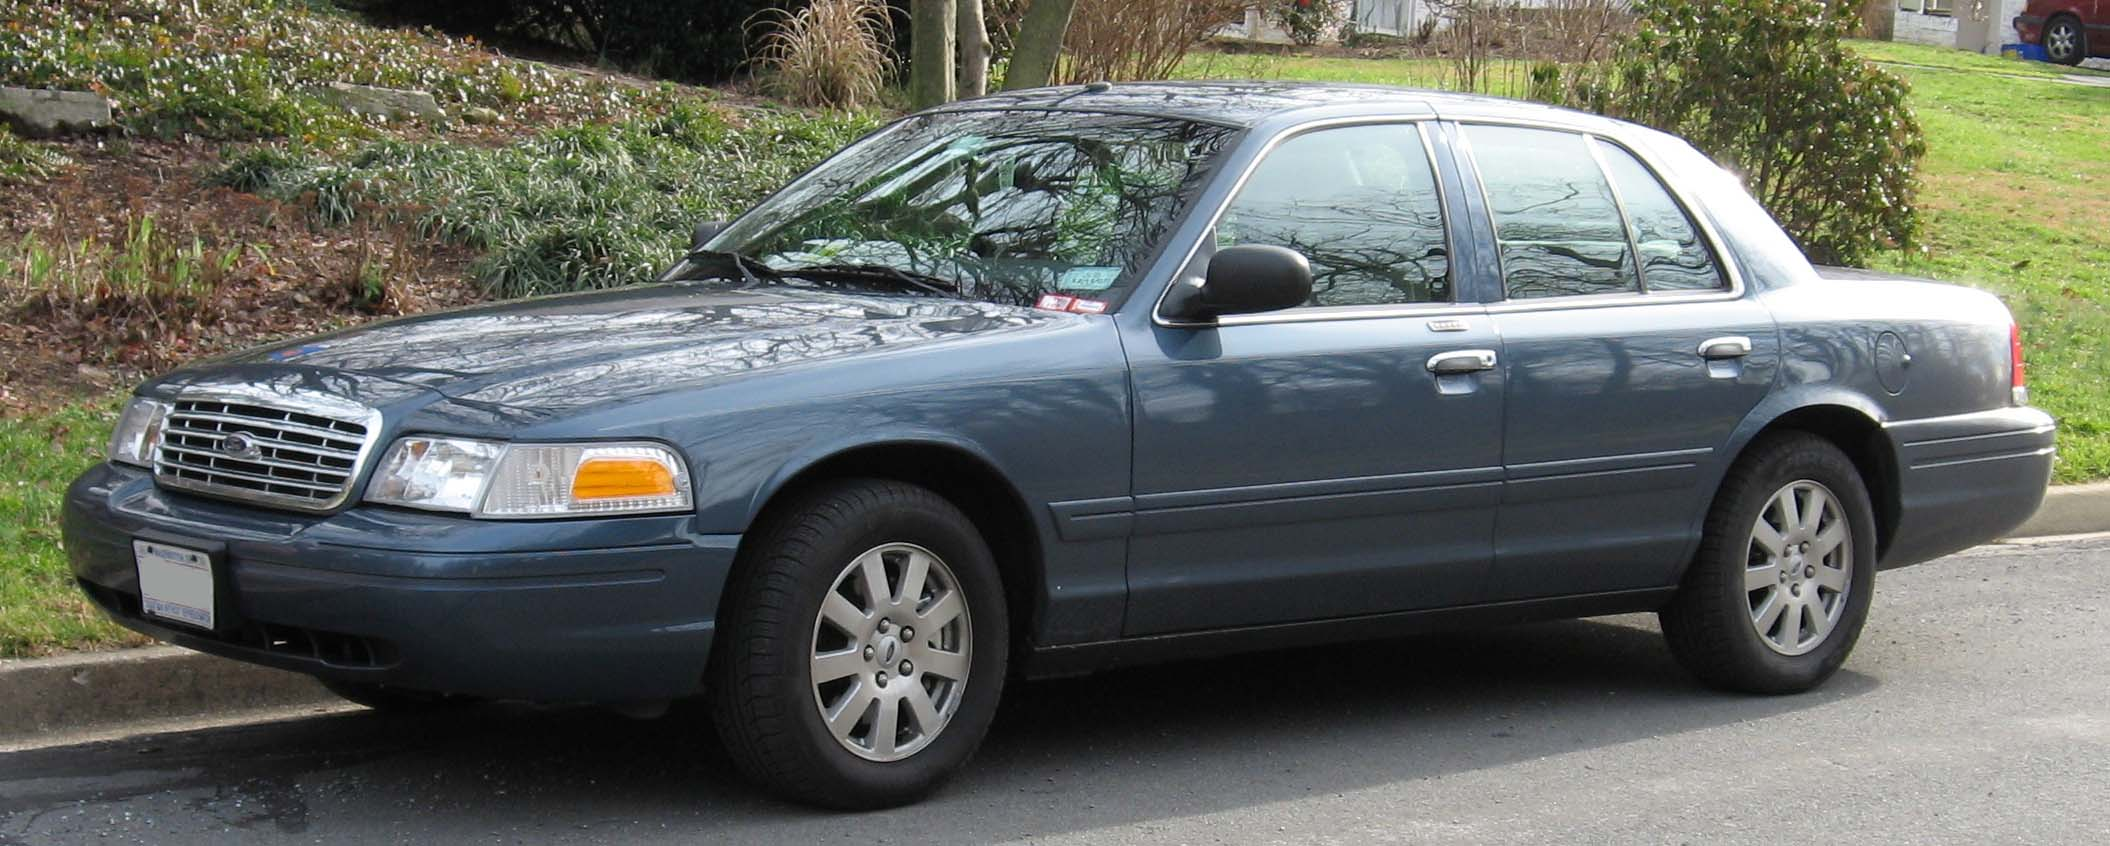 2007 Ford Crown Victoria #5